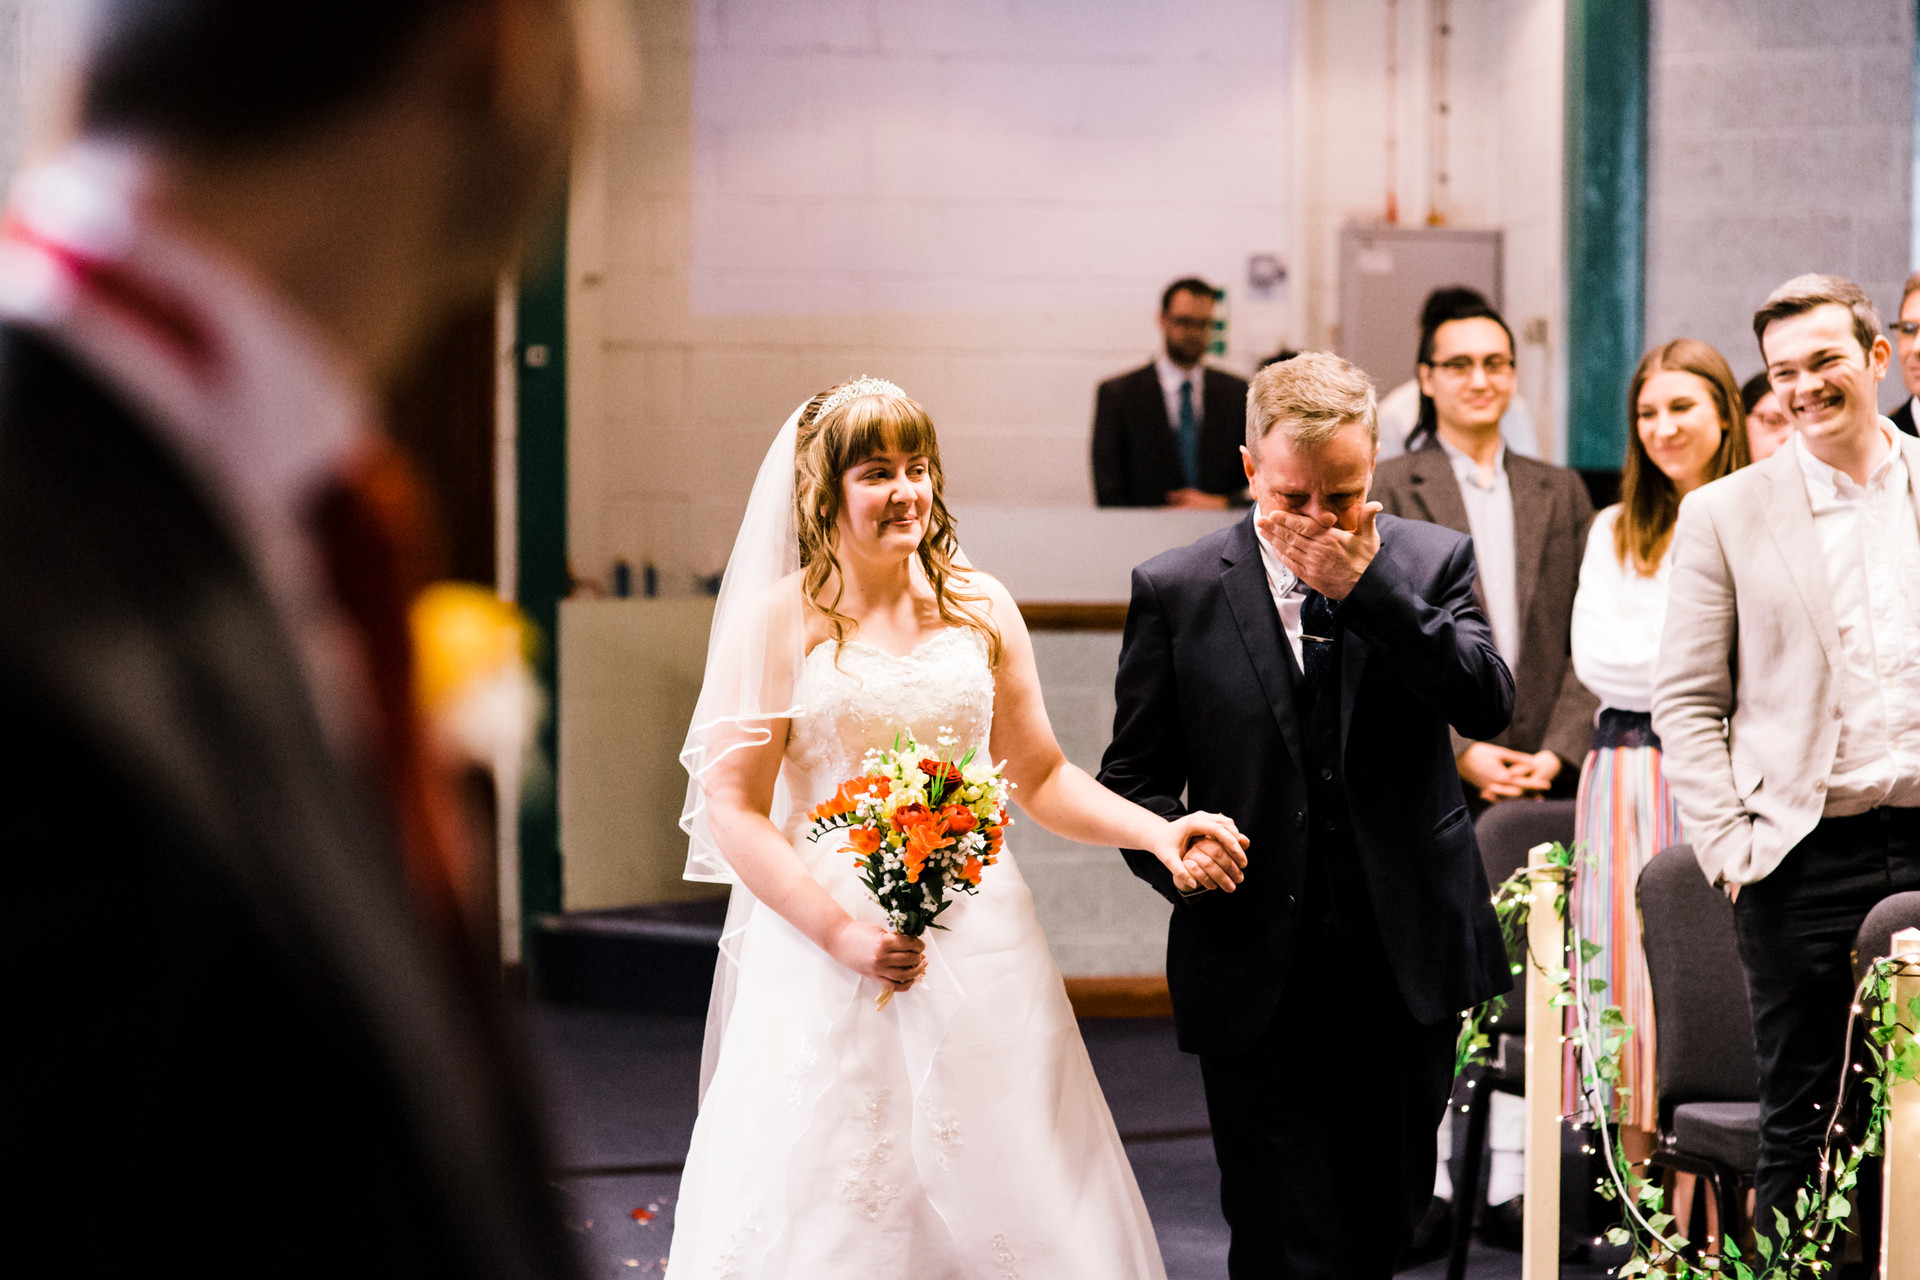 Christian wedding with workshp and prayer